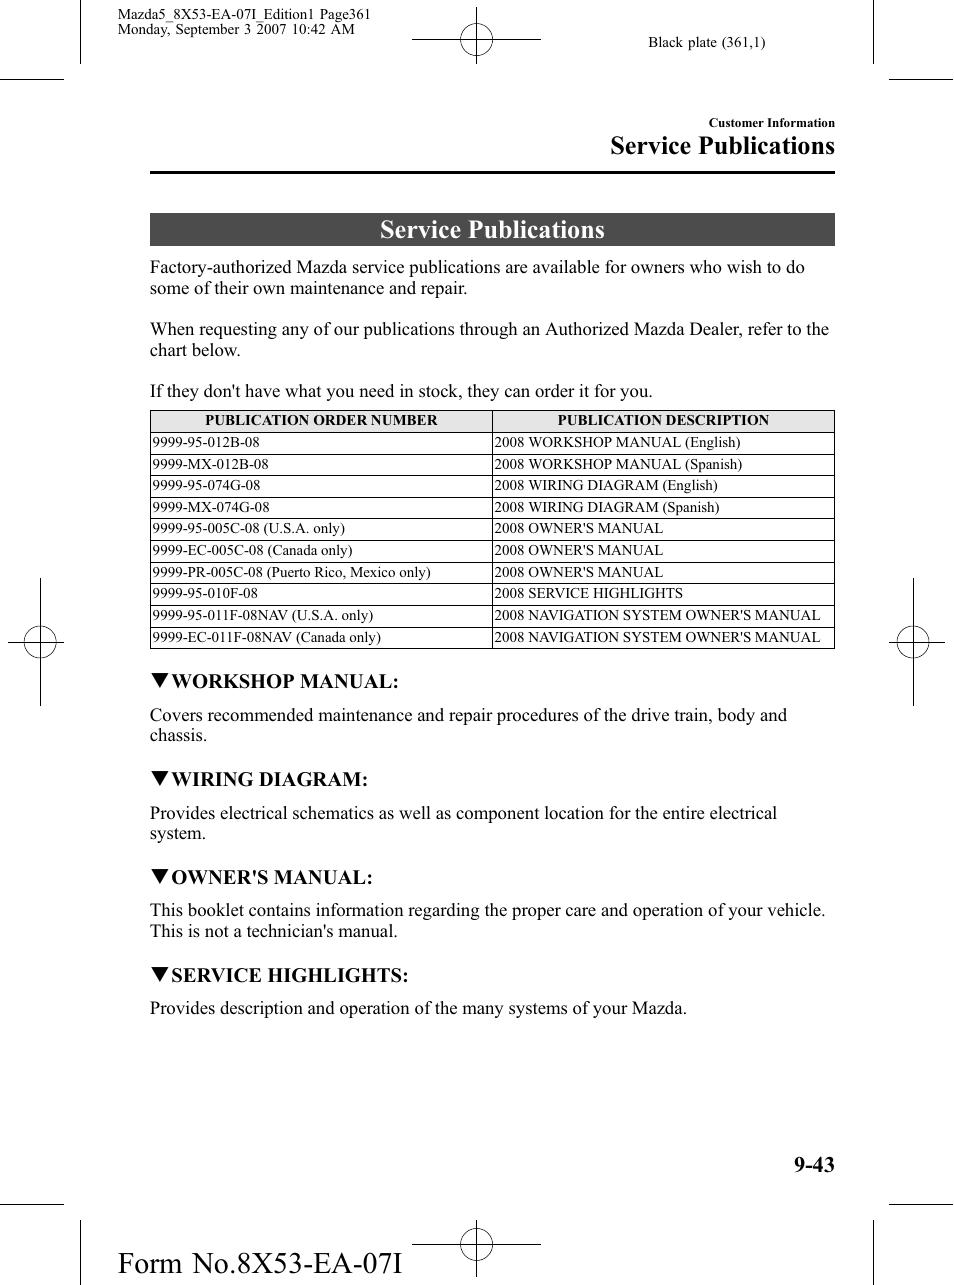 Service Publications 43 Mazda 2008 5 User 2007 3 Wiring Diagram Chasey Manual Page 361 376